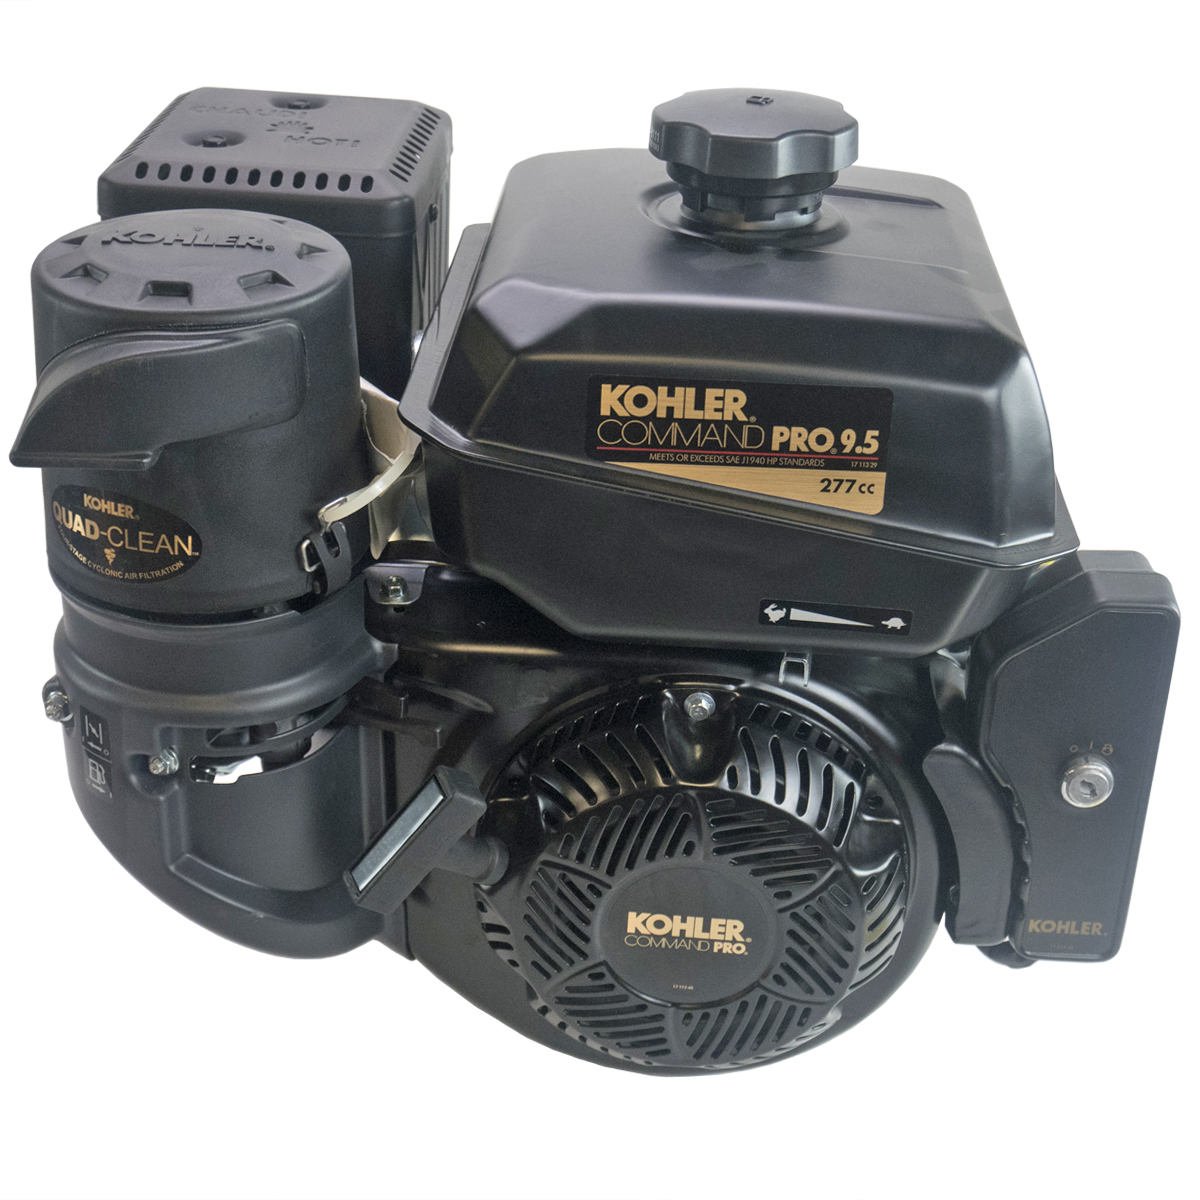 9.5HP Command Pro, 2:1 Wet Clutch Gear Reduction Horizontal 25mm Shaft, Recoil & Electric Start, 10 Amp Alt, OHV, CIS, Cyclonic Air Kohler Engine